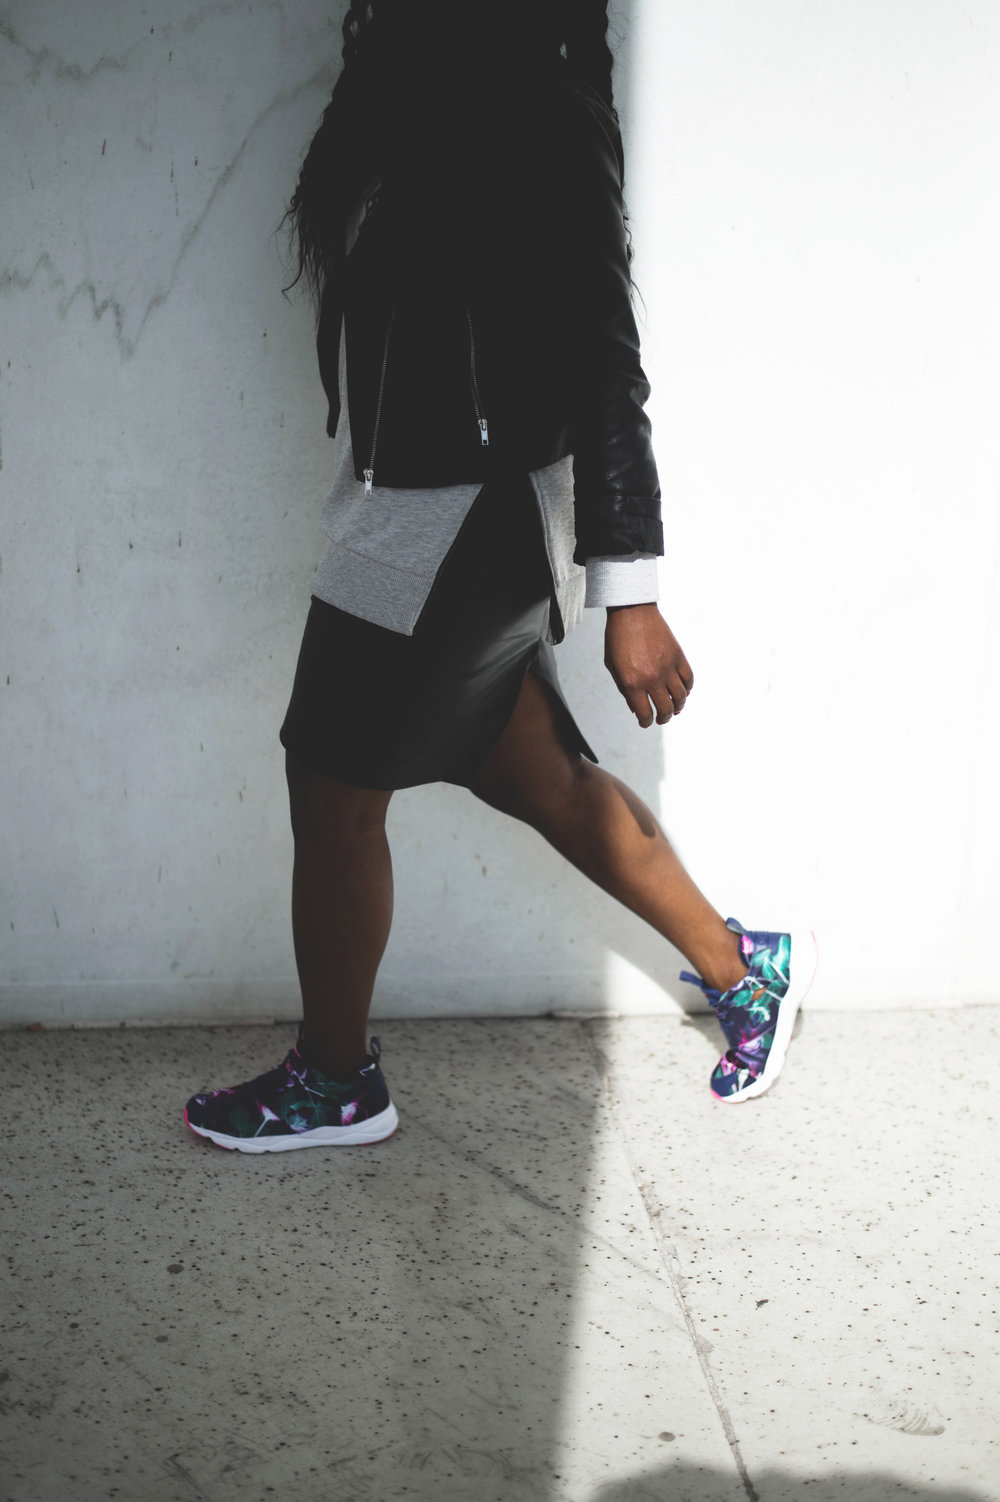 The_Glossier_Tasha_James_Blogger_Style_Fashion_Zara_Fall_Reebok_ThisISClassic_DC-43.jpg